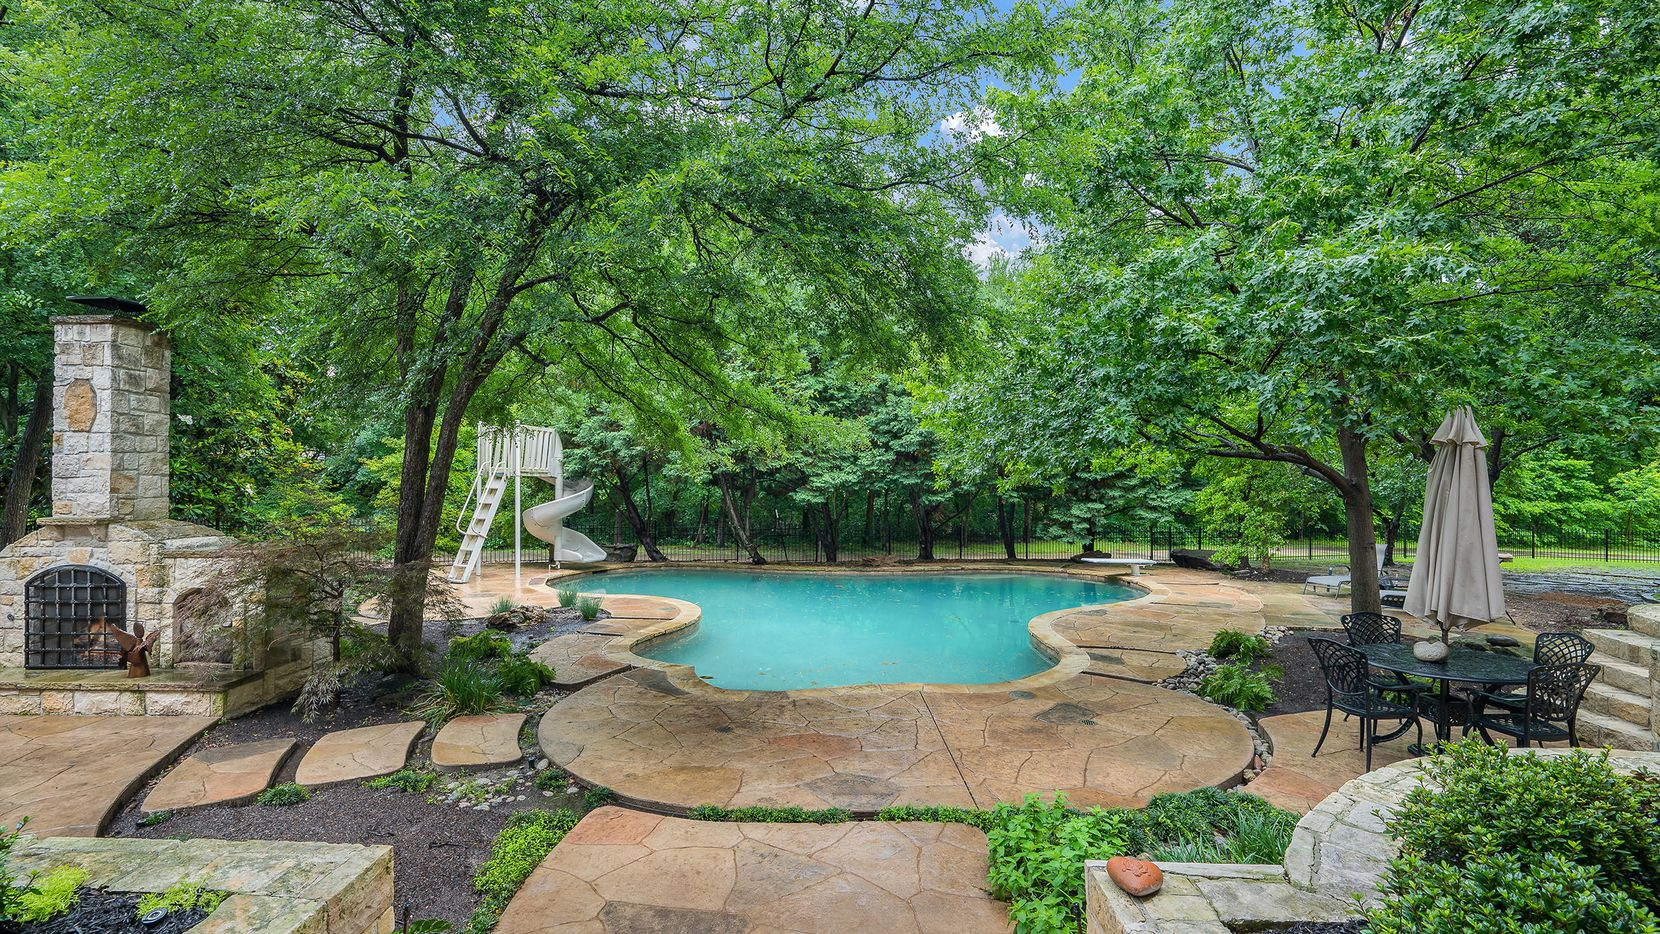 Situated on a double wooded lot, the estate at 6645 Whispering Woods Court is Plano's Shoal Creek is offered at $2,595,000. The home will be held open from 1 to 3 p.m. today.